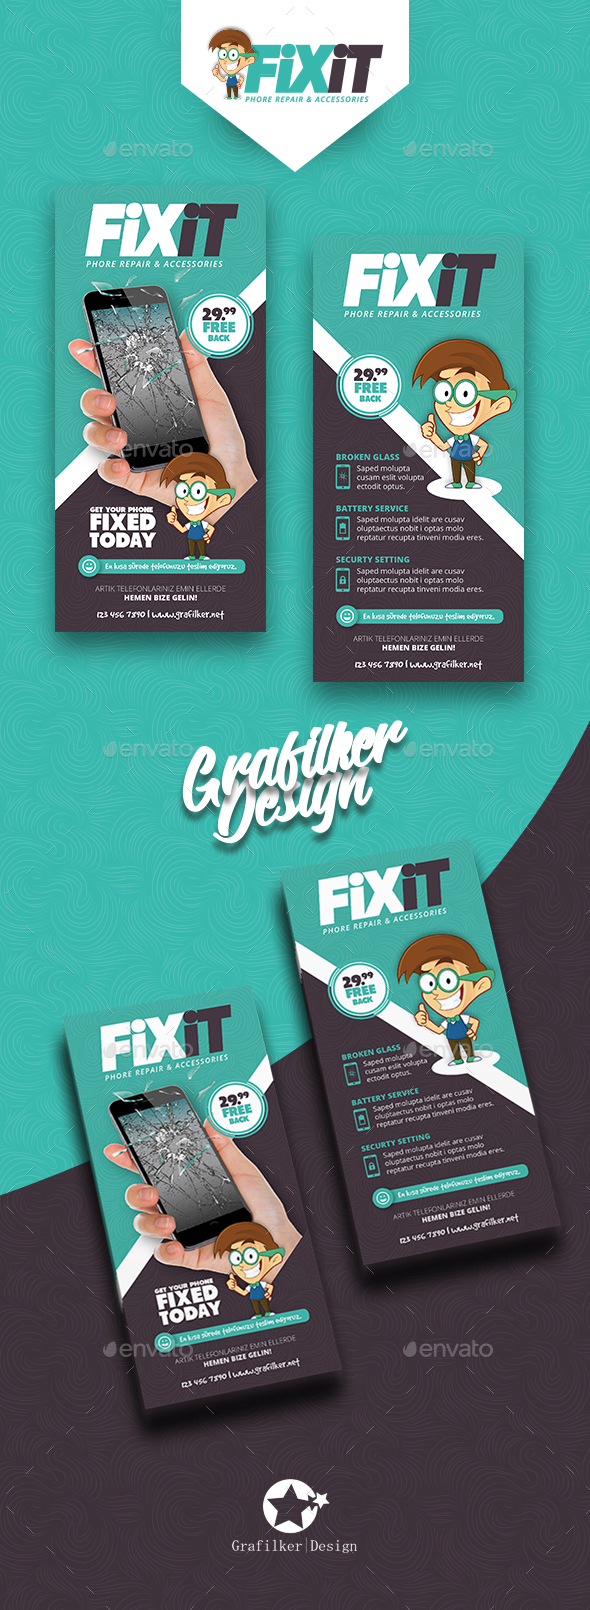 Phone Repair Flyer Templates - Corporate Flyers